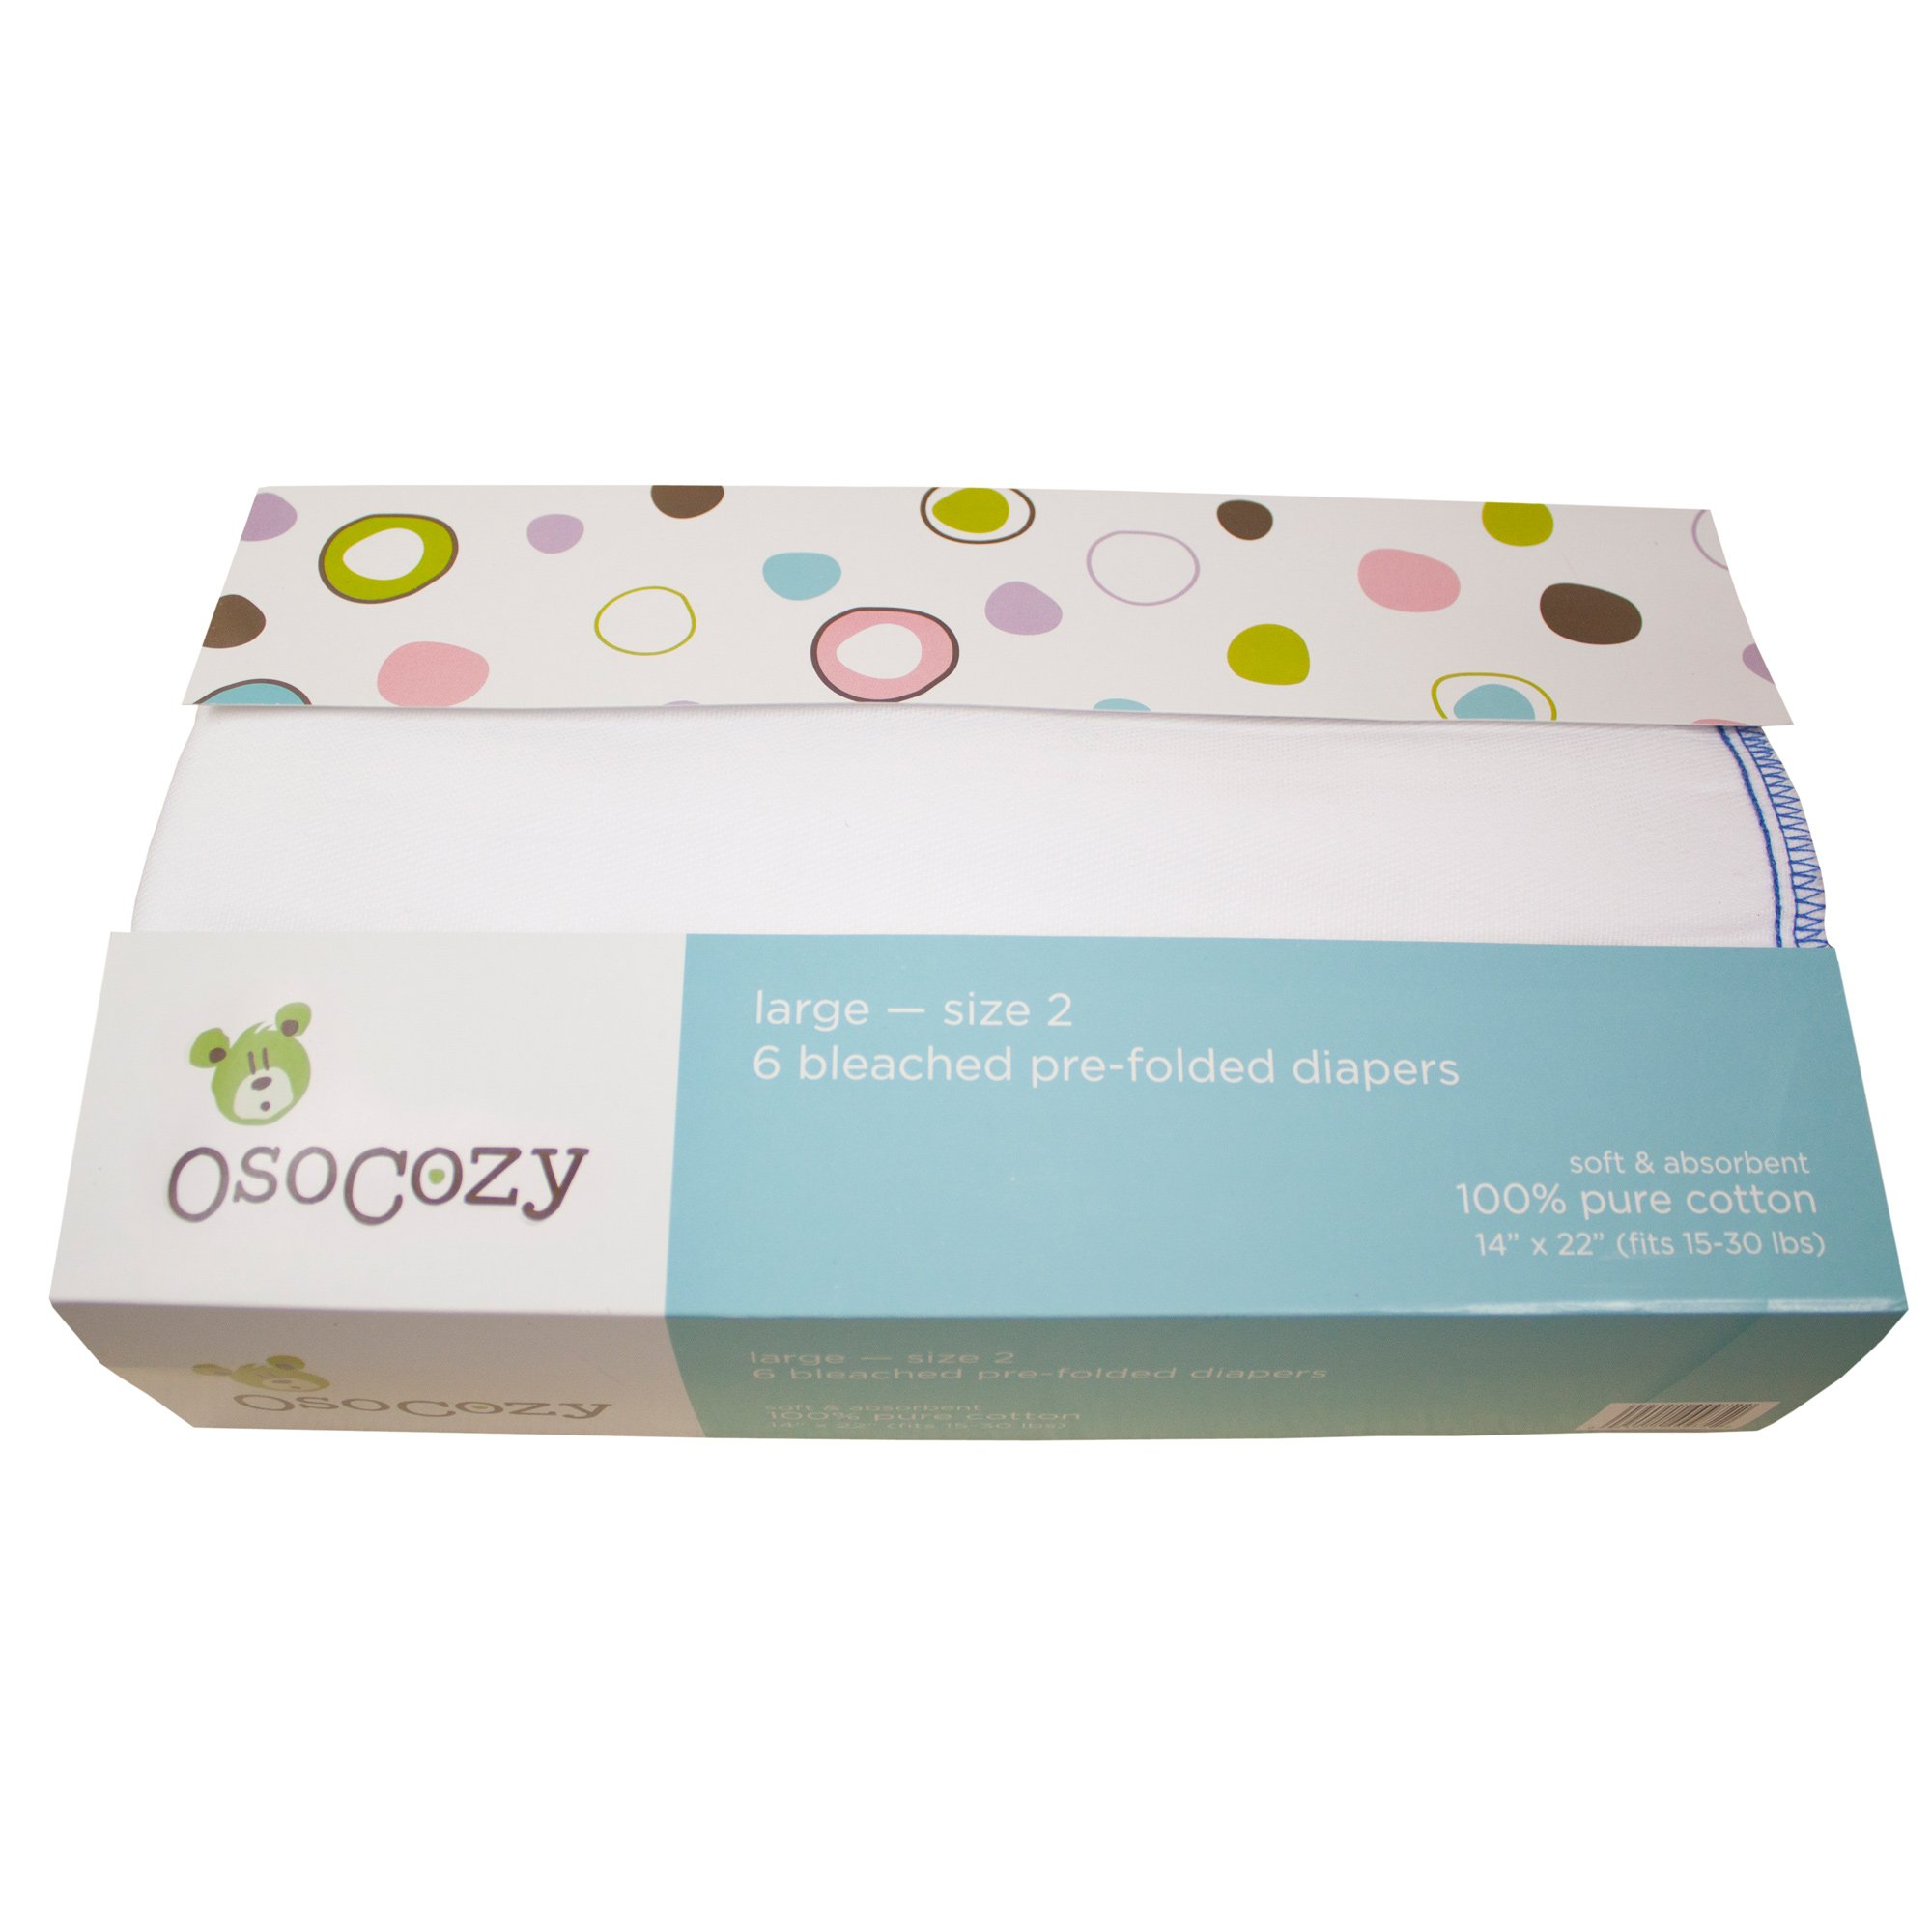 OsoCozy 6 Pack Prefolds Bleached Cloth Diapers, Size 2 fits 15-30 lbs. by OsoCozy